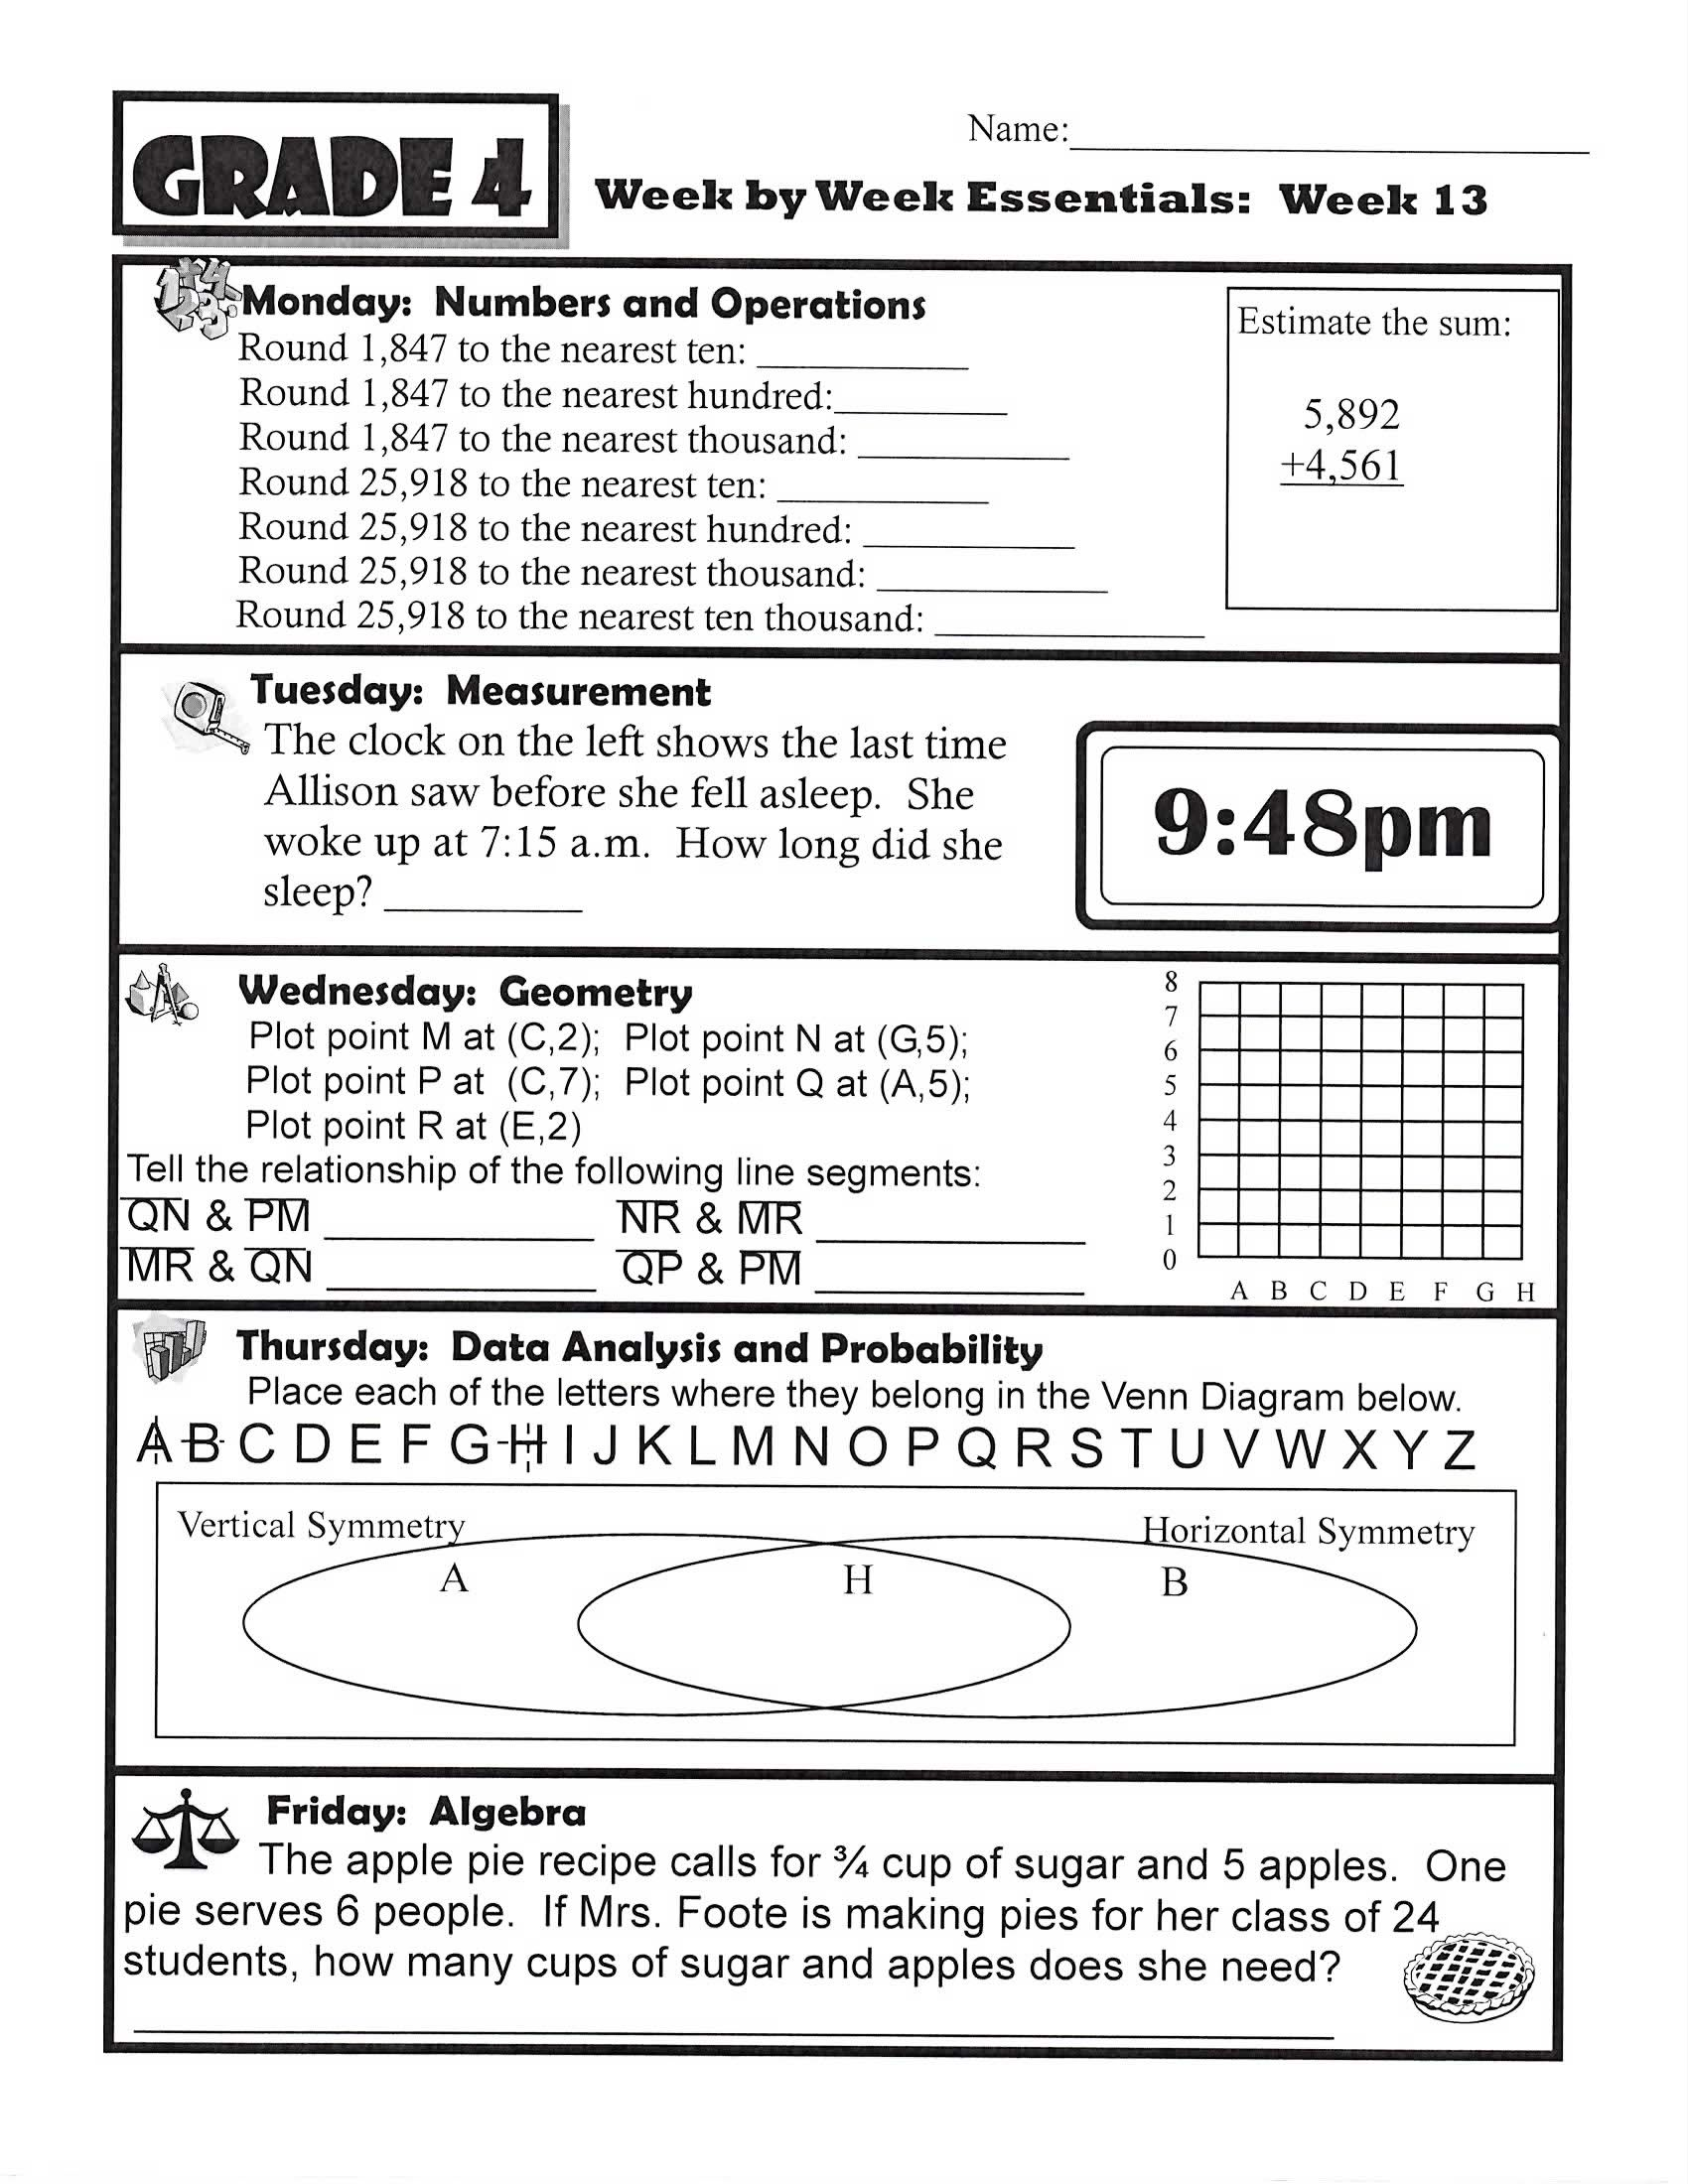 worksheet Homework Worksheets 4th grade homework sheets foote in math tags grade